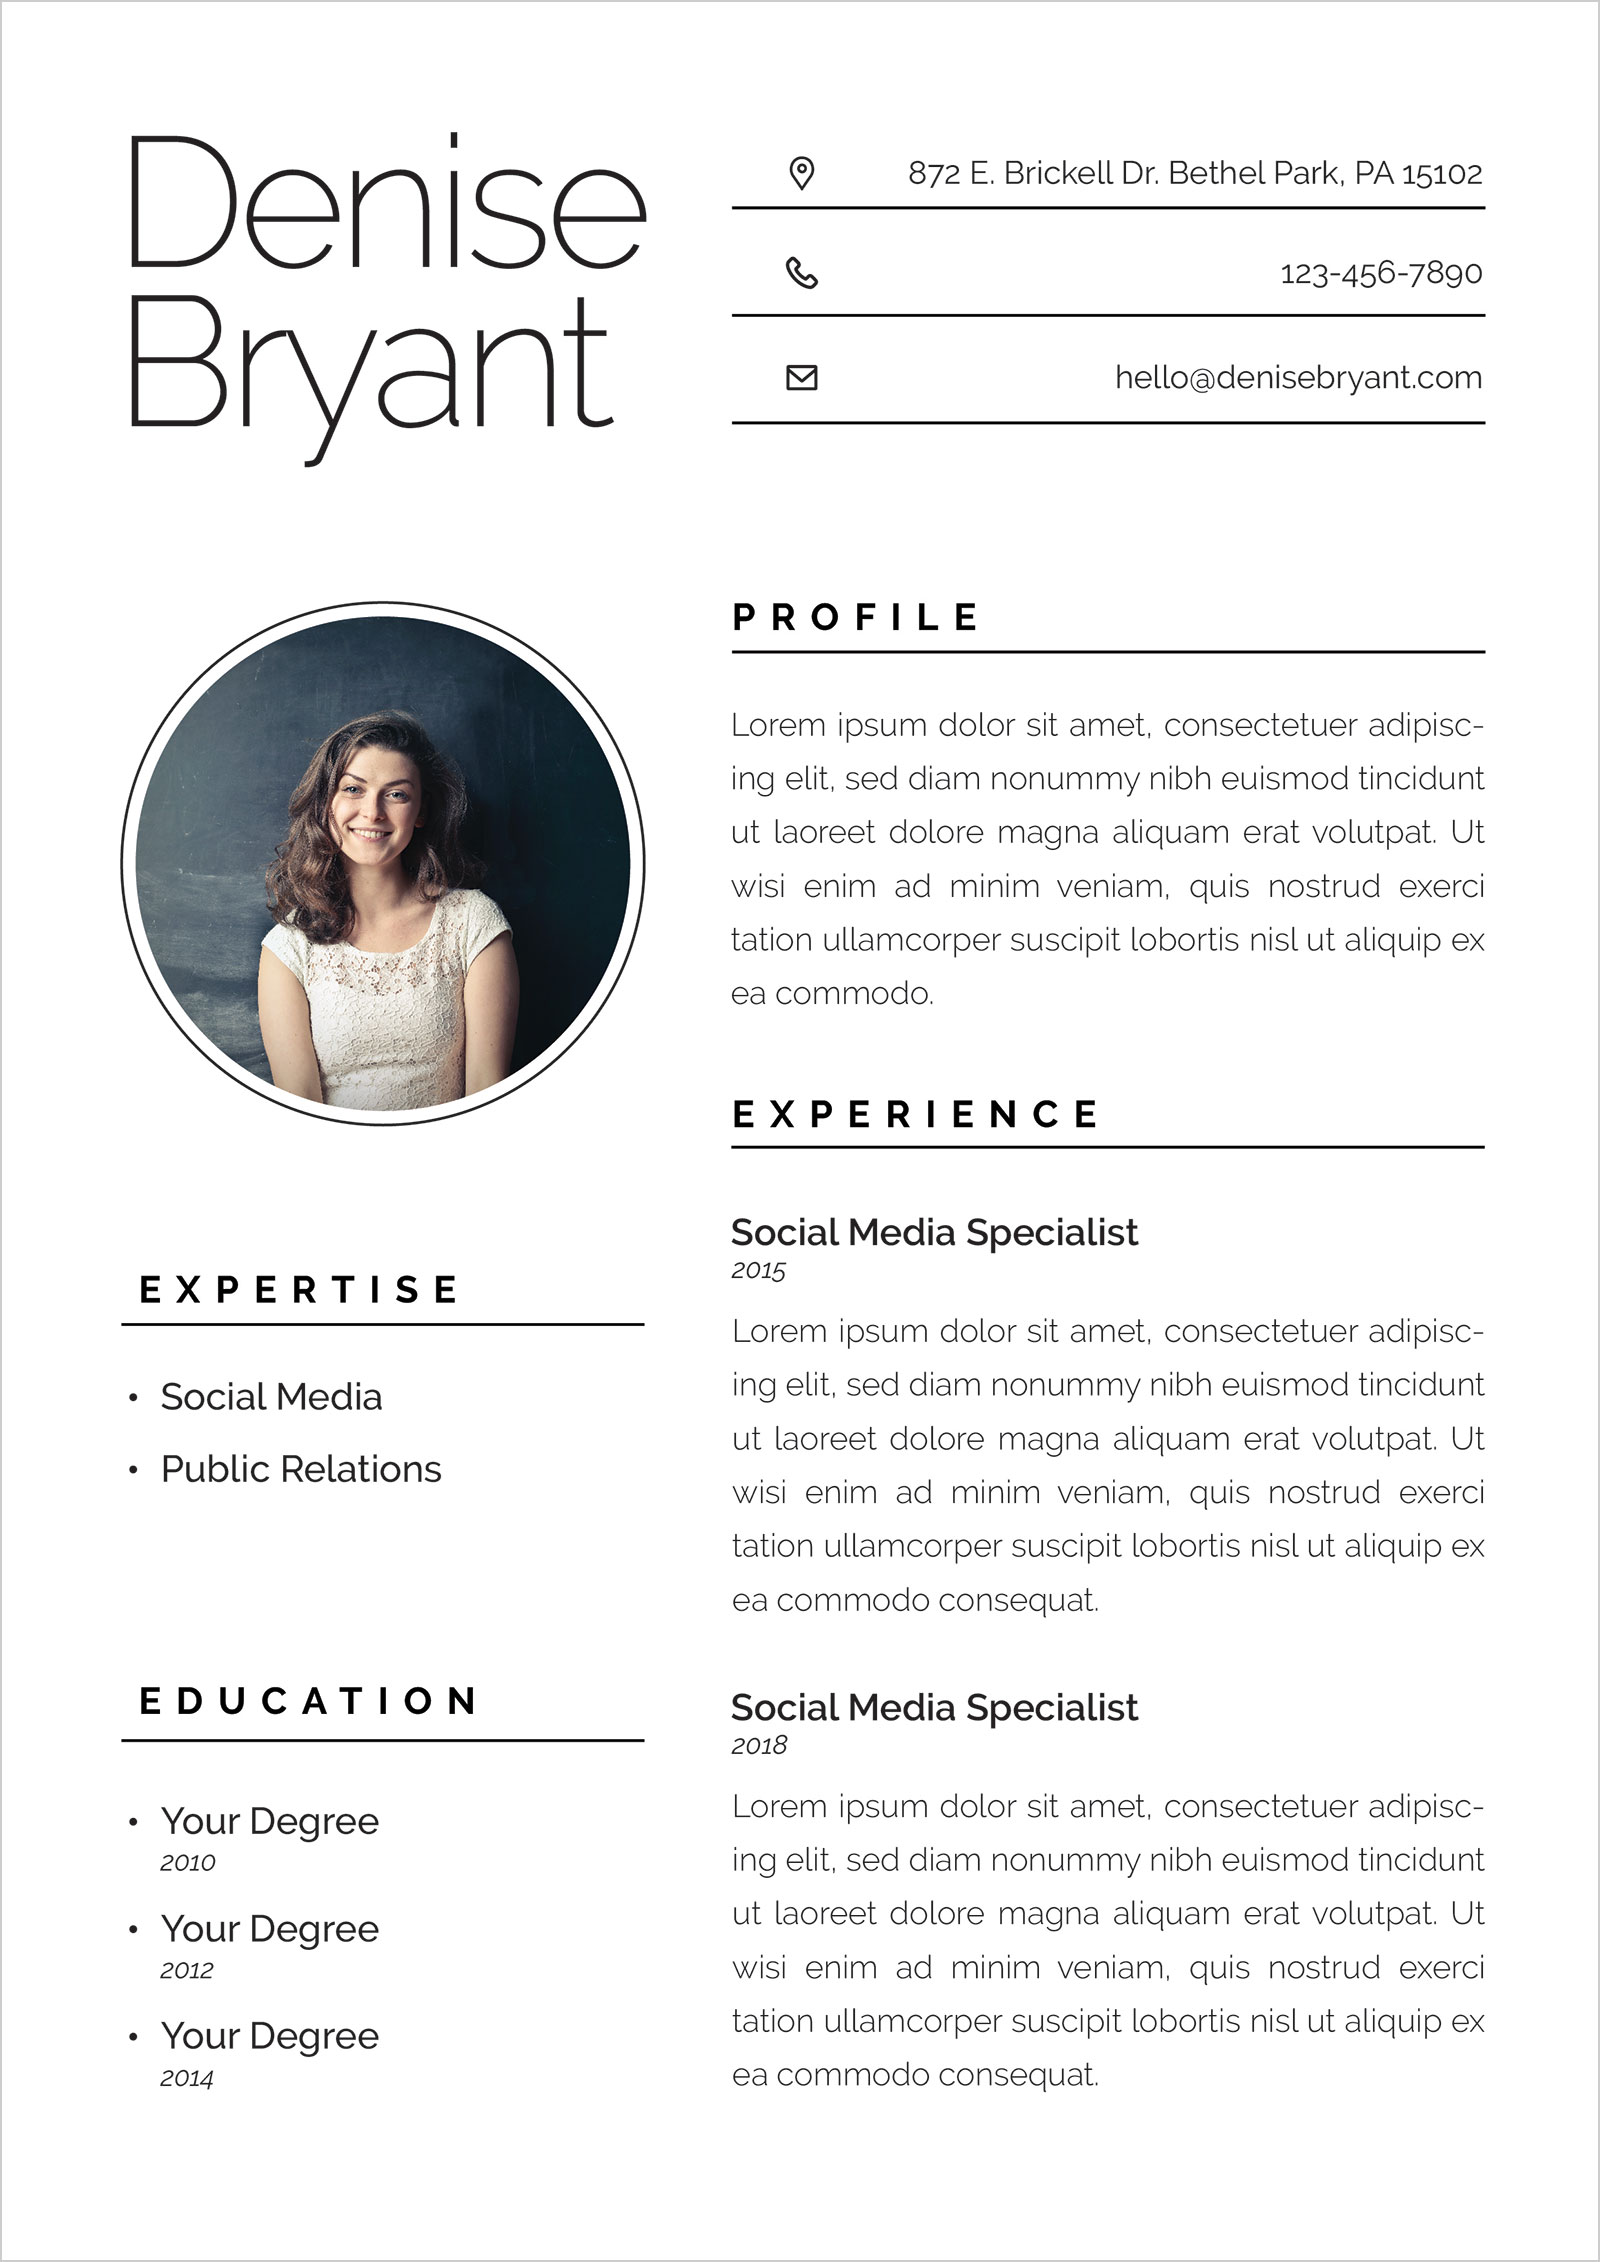 Free-Ai-Resume-CV-Template-for-Social-Media-Special-&-Public-Relation-Officer